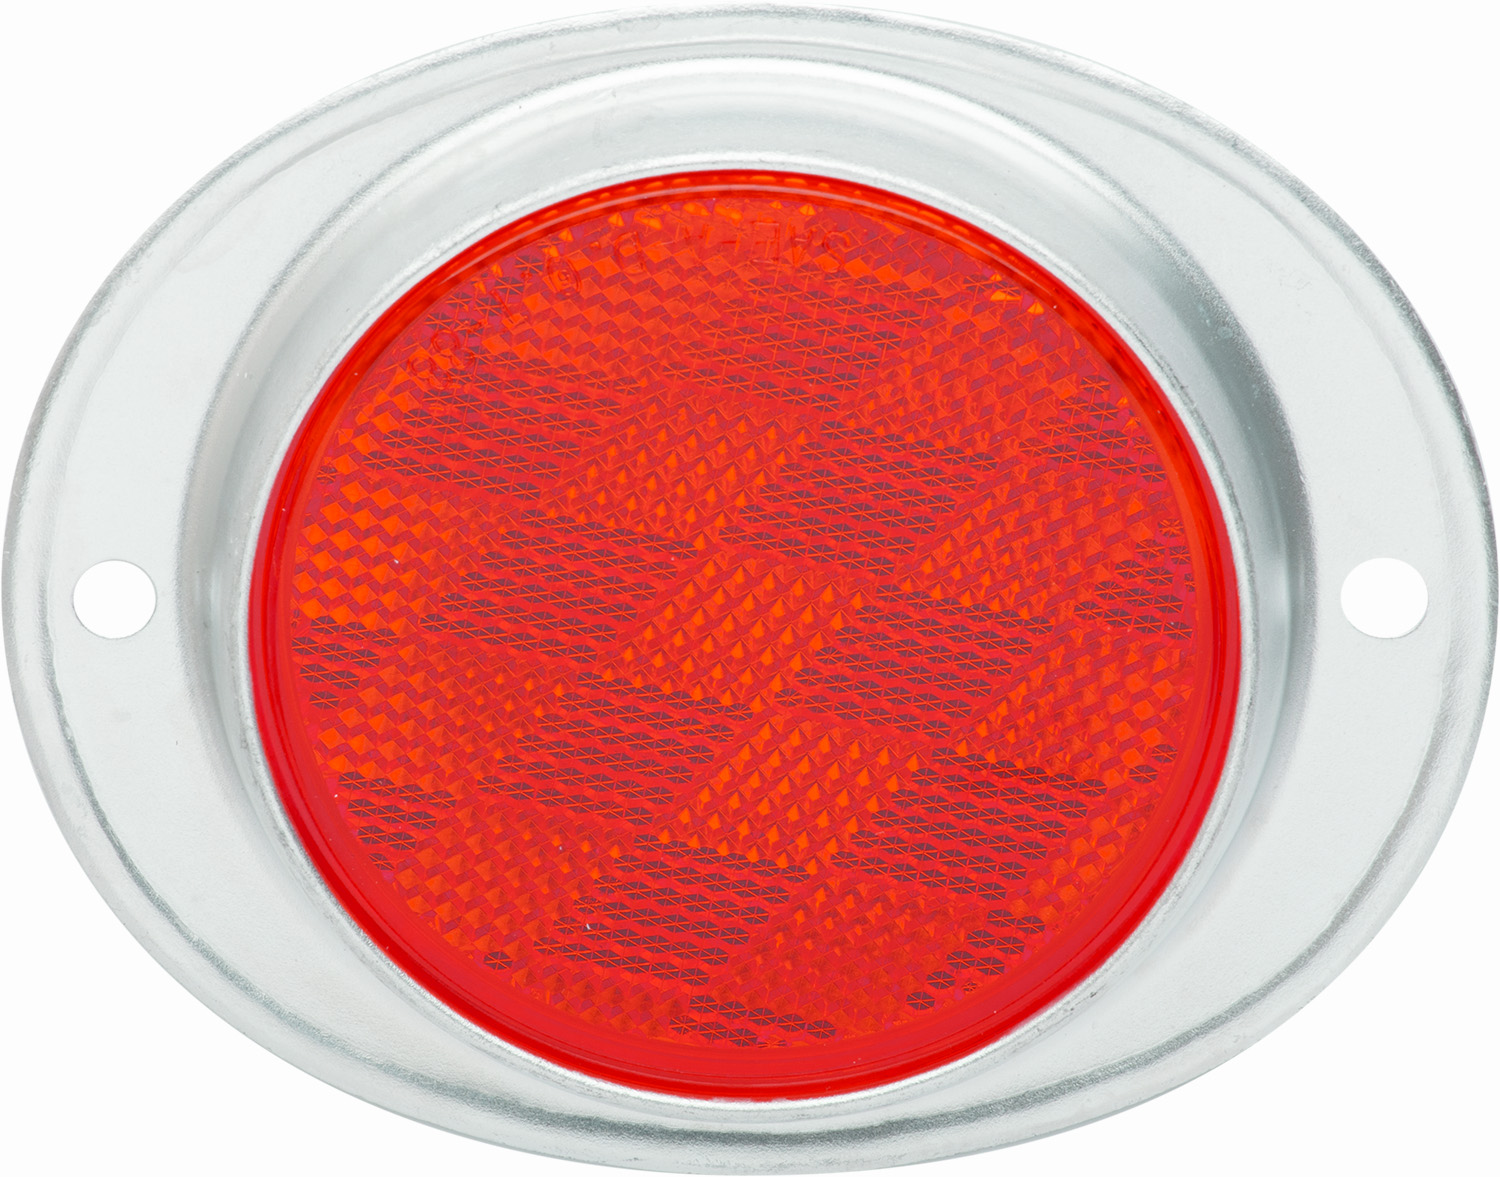 RE31RS_OPTRONICS RE31RS Retail Pack: Armored Aluminium Red Screw Mount Reflector Clam